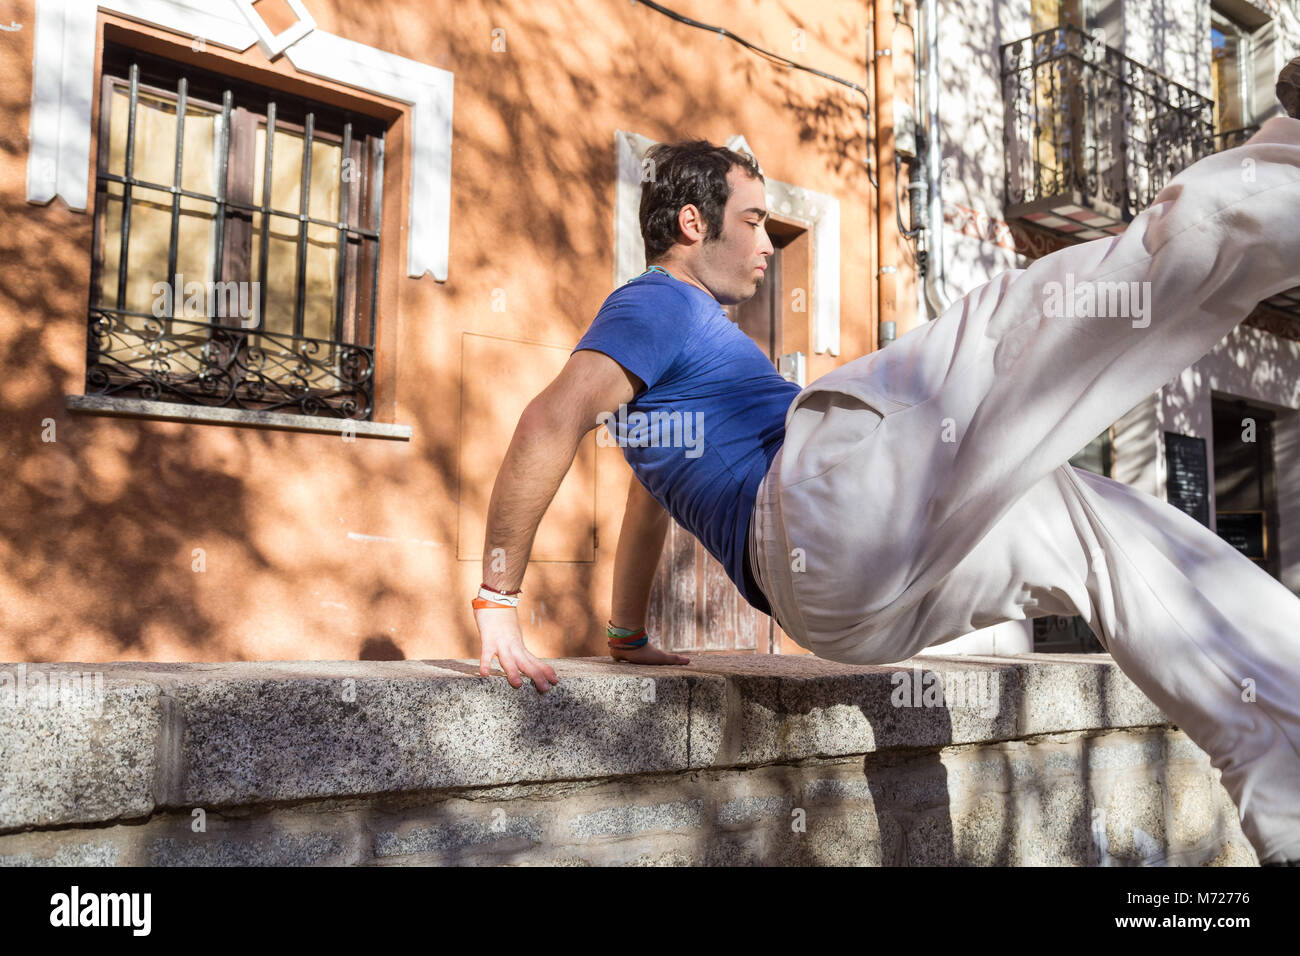 Young man doing an amazing parkour trick on the street. - Stock Image